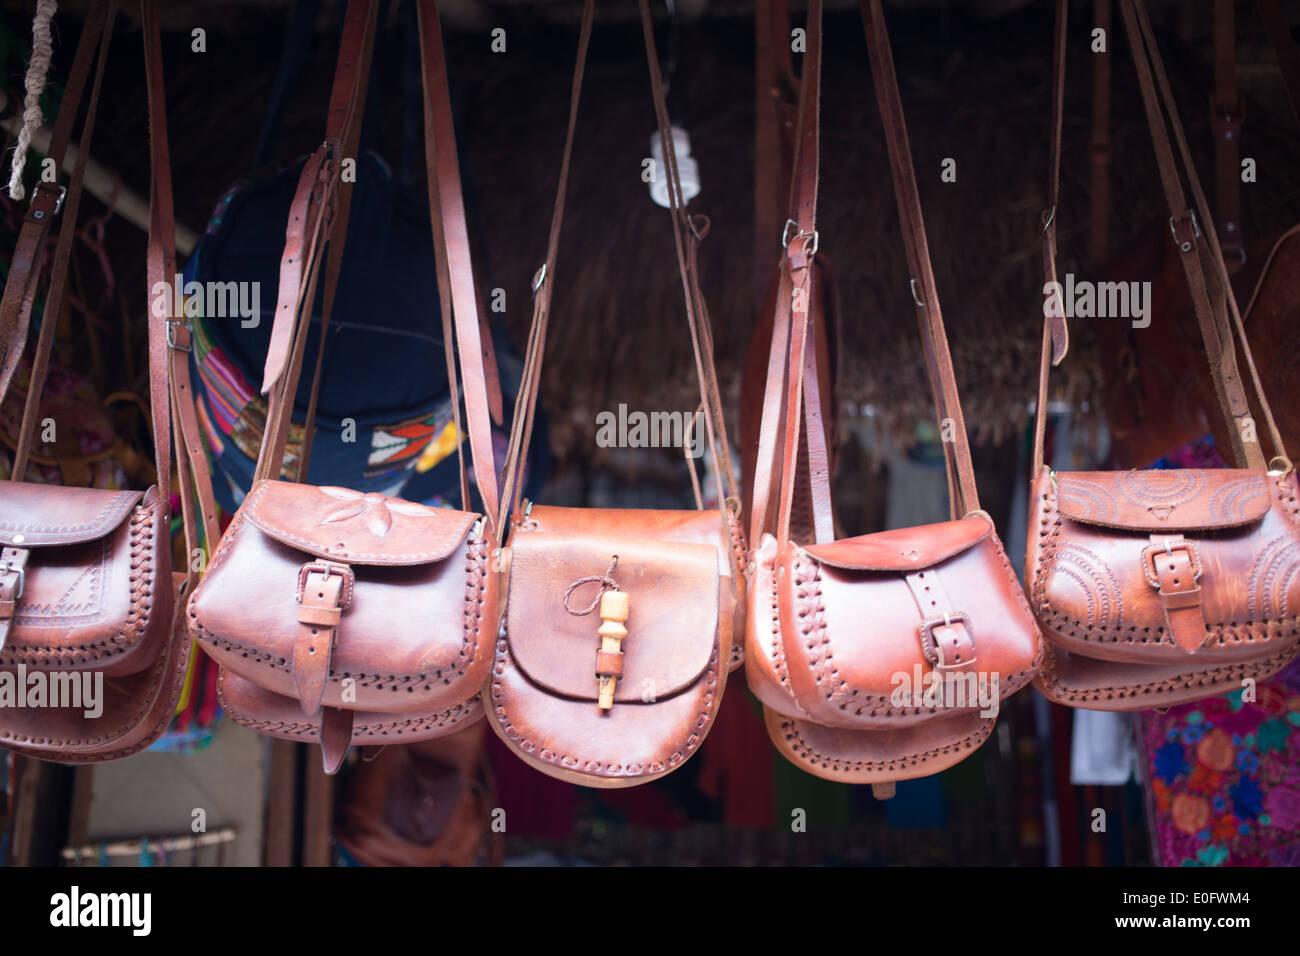 Leather purses for sale at street vendor in Tulum, Mexico - Stock Image